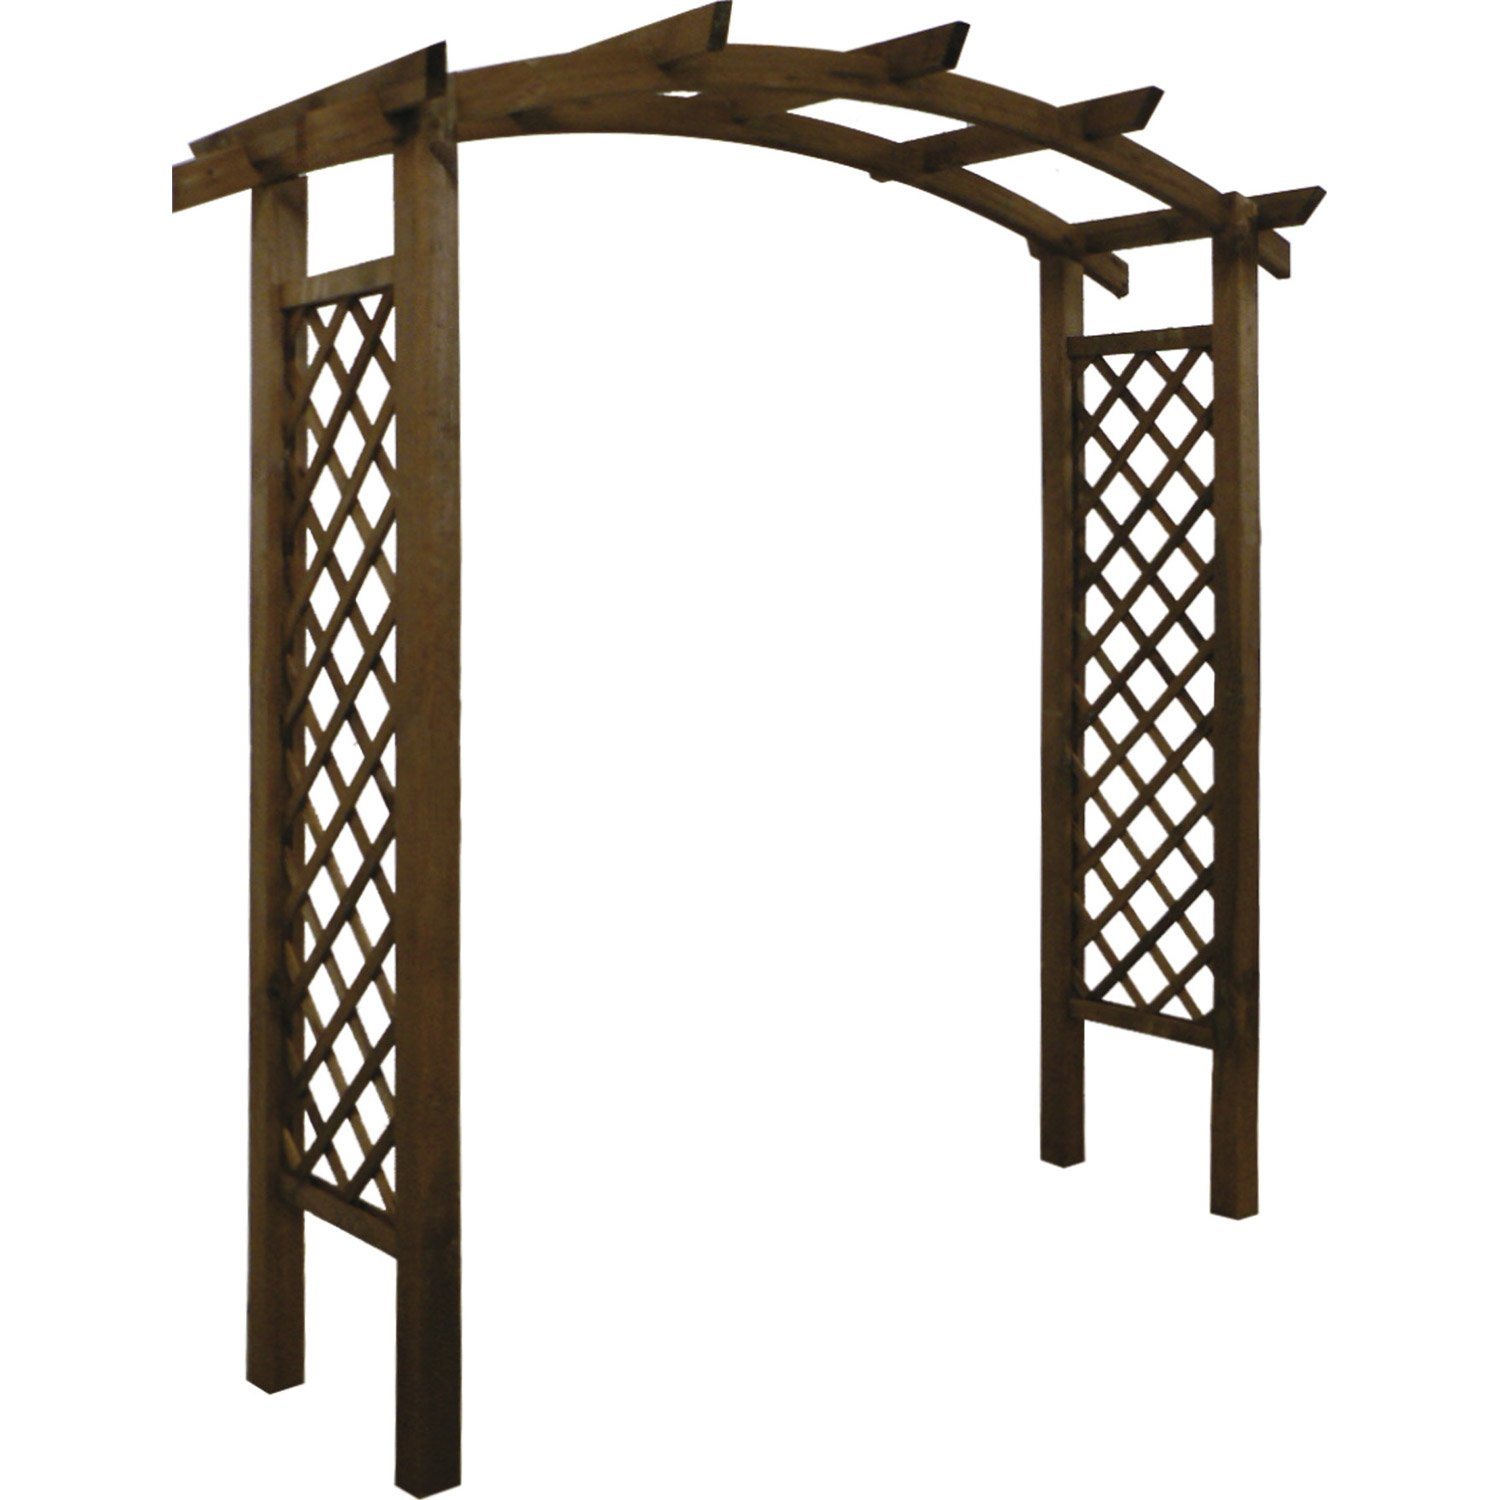 pergola glycine leroy merlin. Black Bedroom Furniture Sets. Home Design Ideas